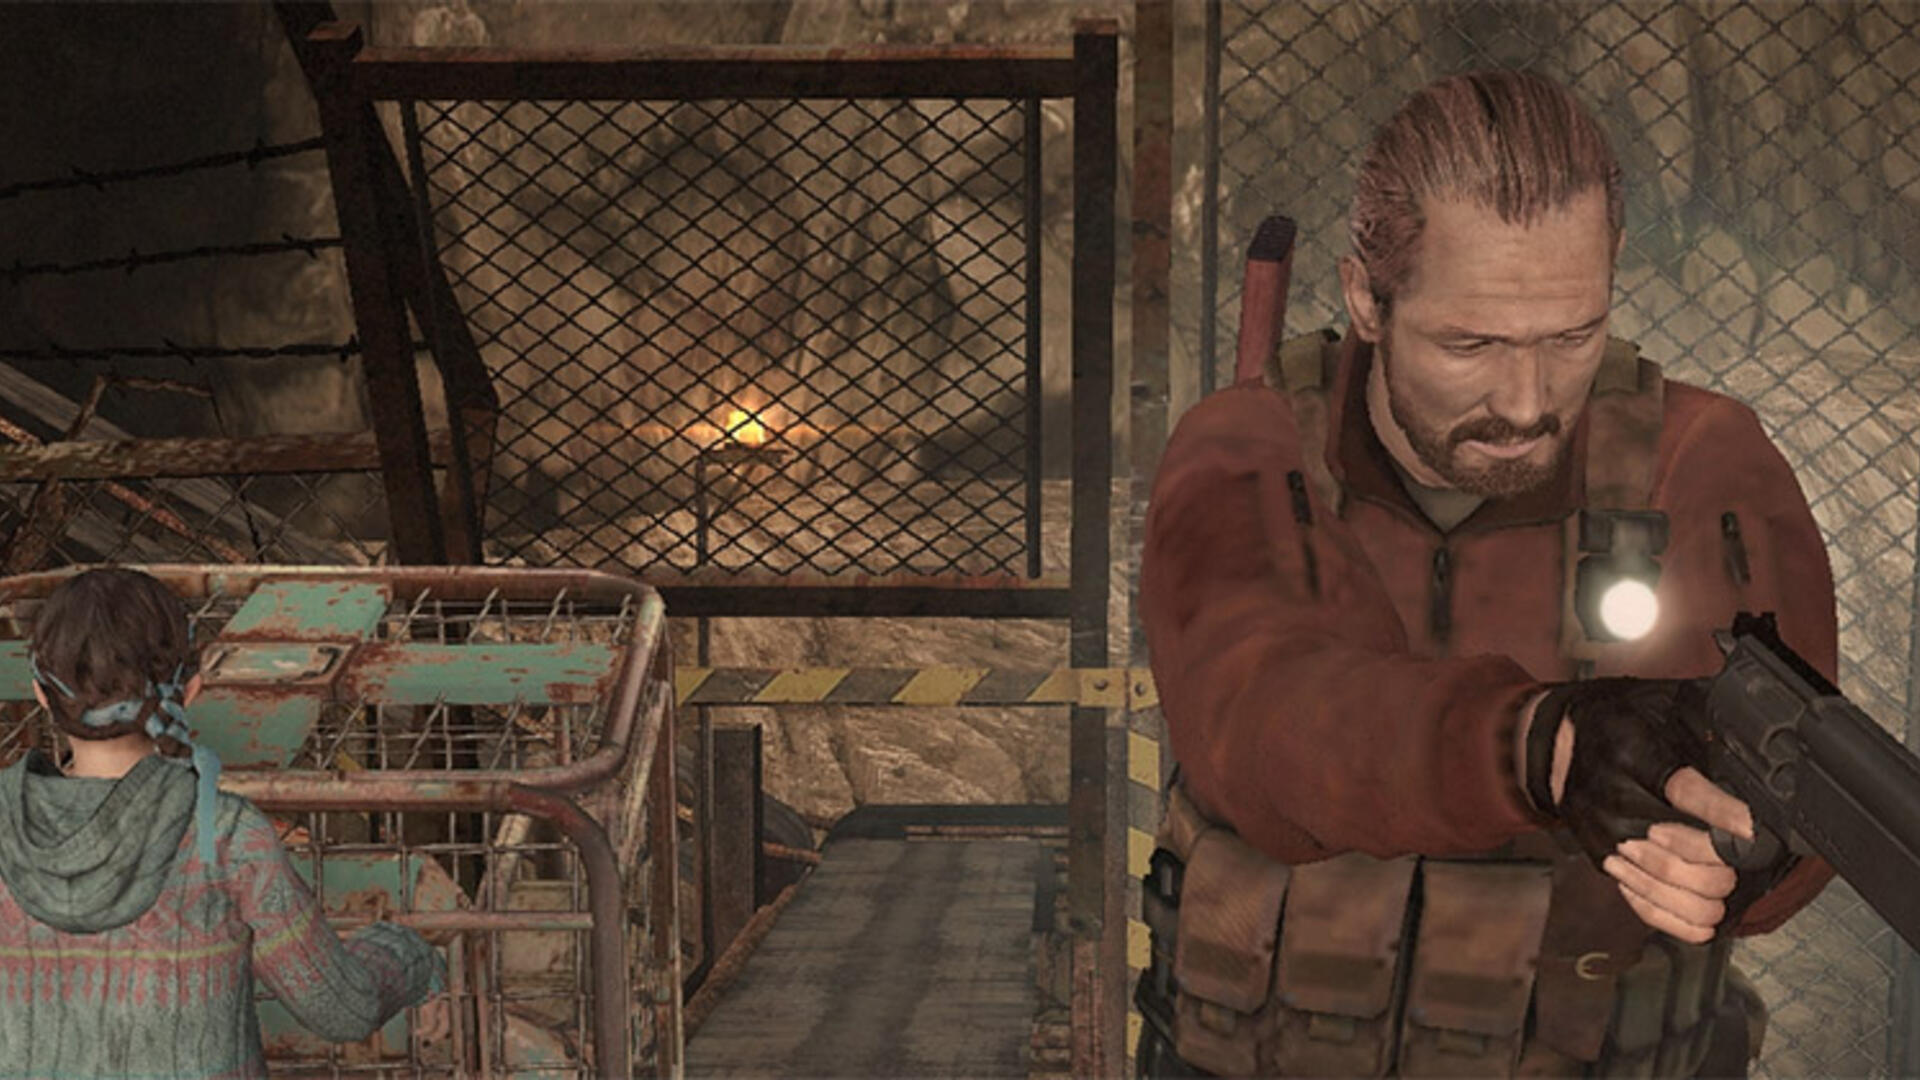 Resident Evil Revelations 2 Xbox One Review: When Paint-by-Numbers Isn't so Bad